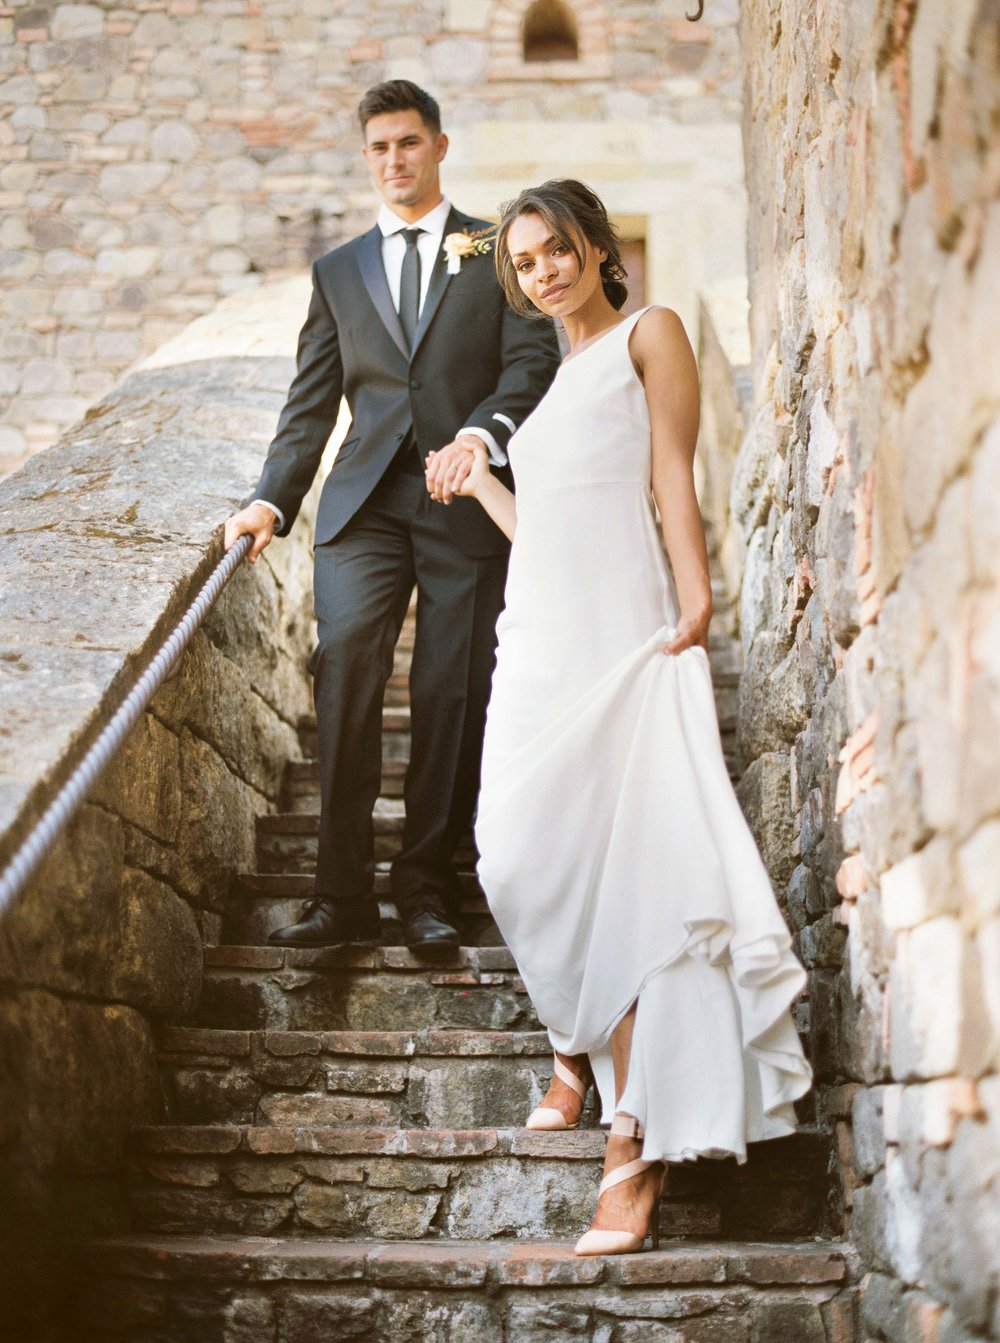 016napa_wedding_photographer_and_videographer_destination_and_elopement_photography.jpg